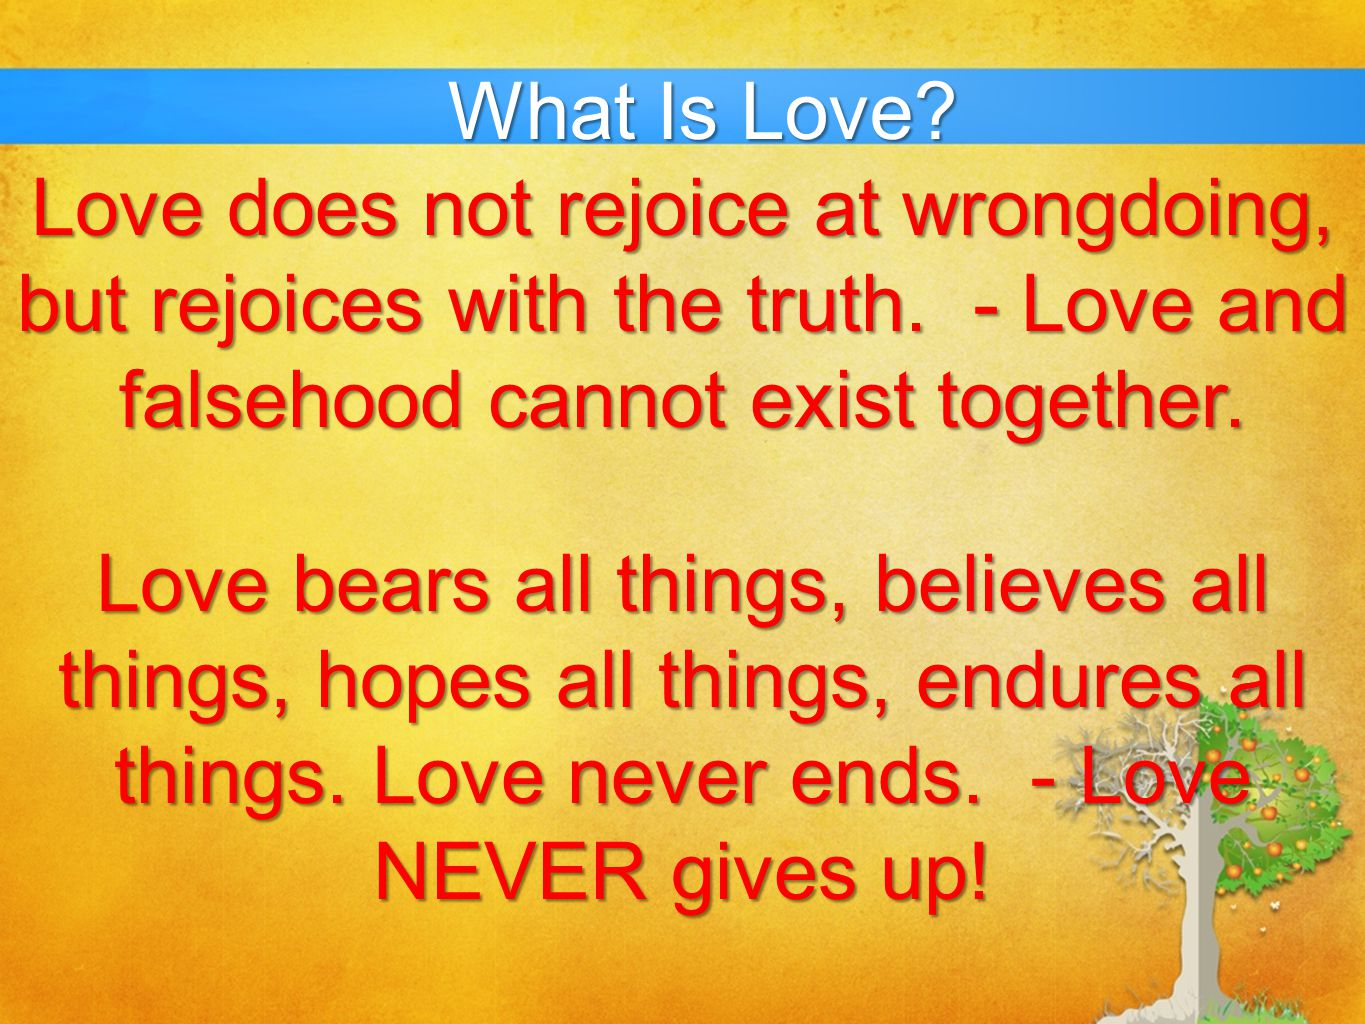 What Is Love? Love bears all things, believes all things, hopes all things, endures all things. Love never ends. - Love NEVER gives up! Love does not